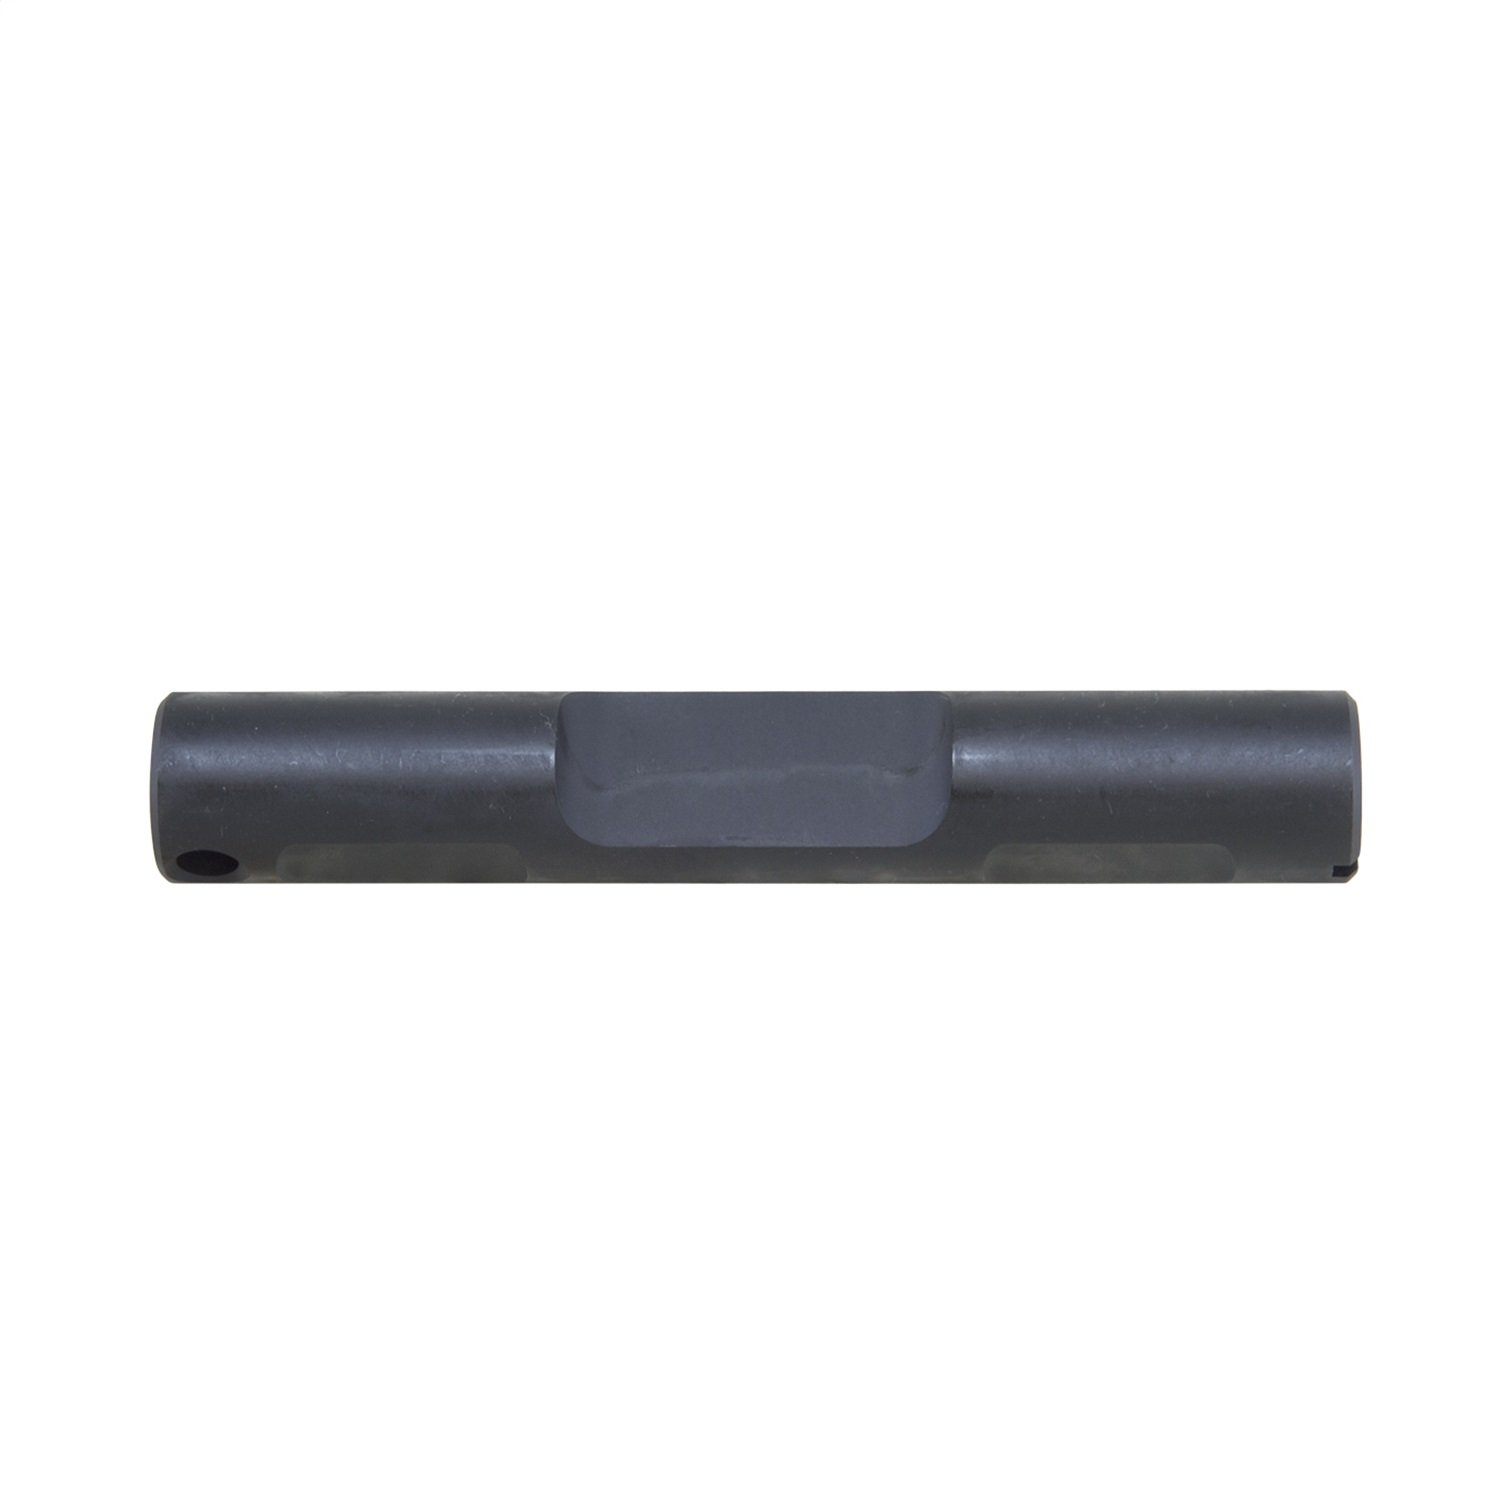 Yukon (YSPXP-056) 0.795'' Diameter Notched Cross Pin Shaft for GM 10-Bolt 8.5'' Differential